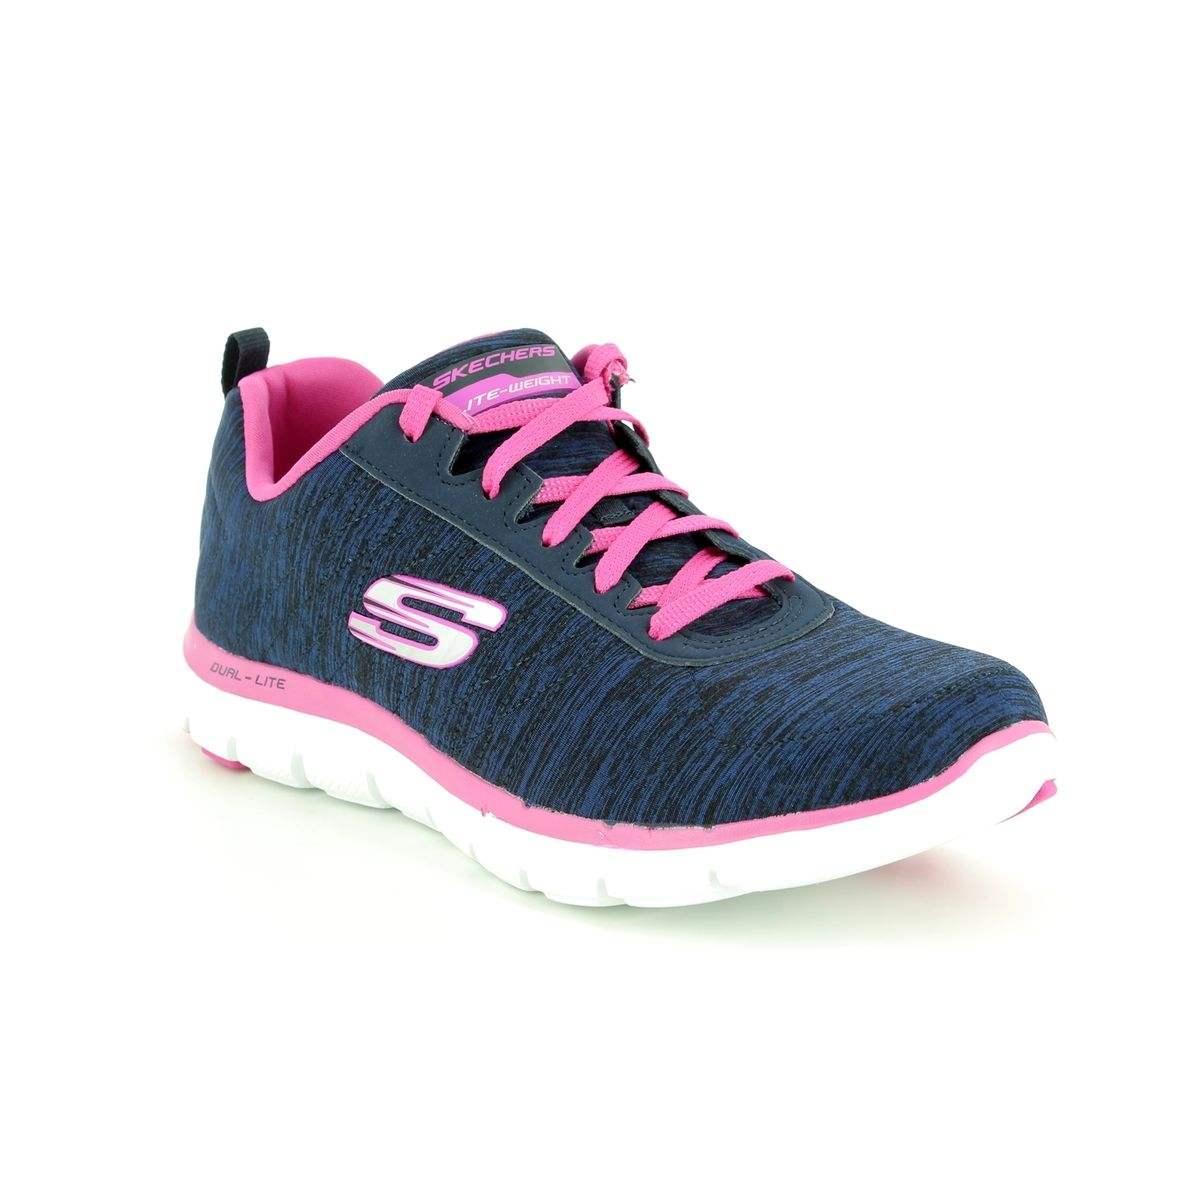 c0a89fb6f47 Skechers Flex Appeal 2 12753 NVPK Navy-Pink trainers